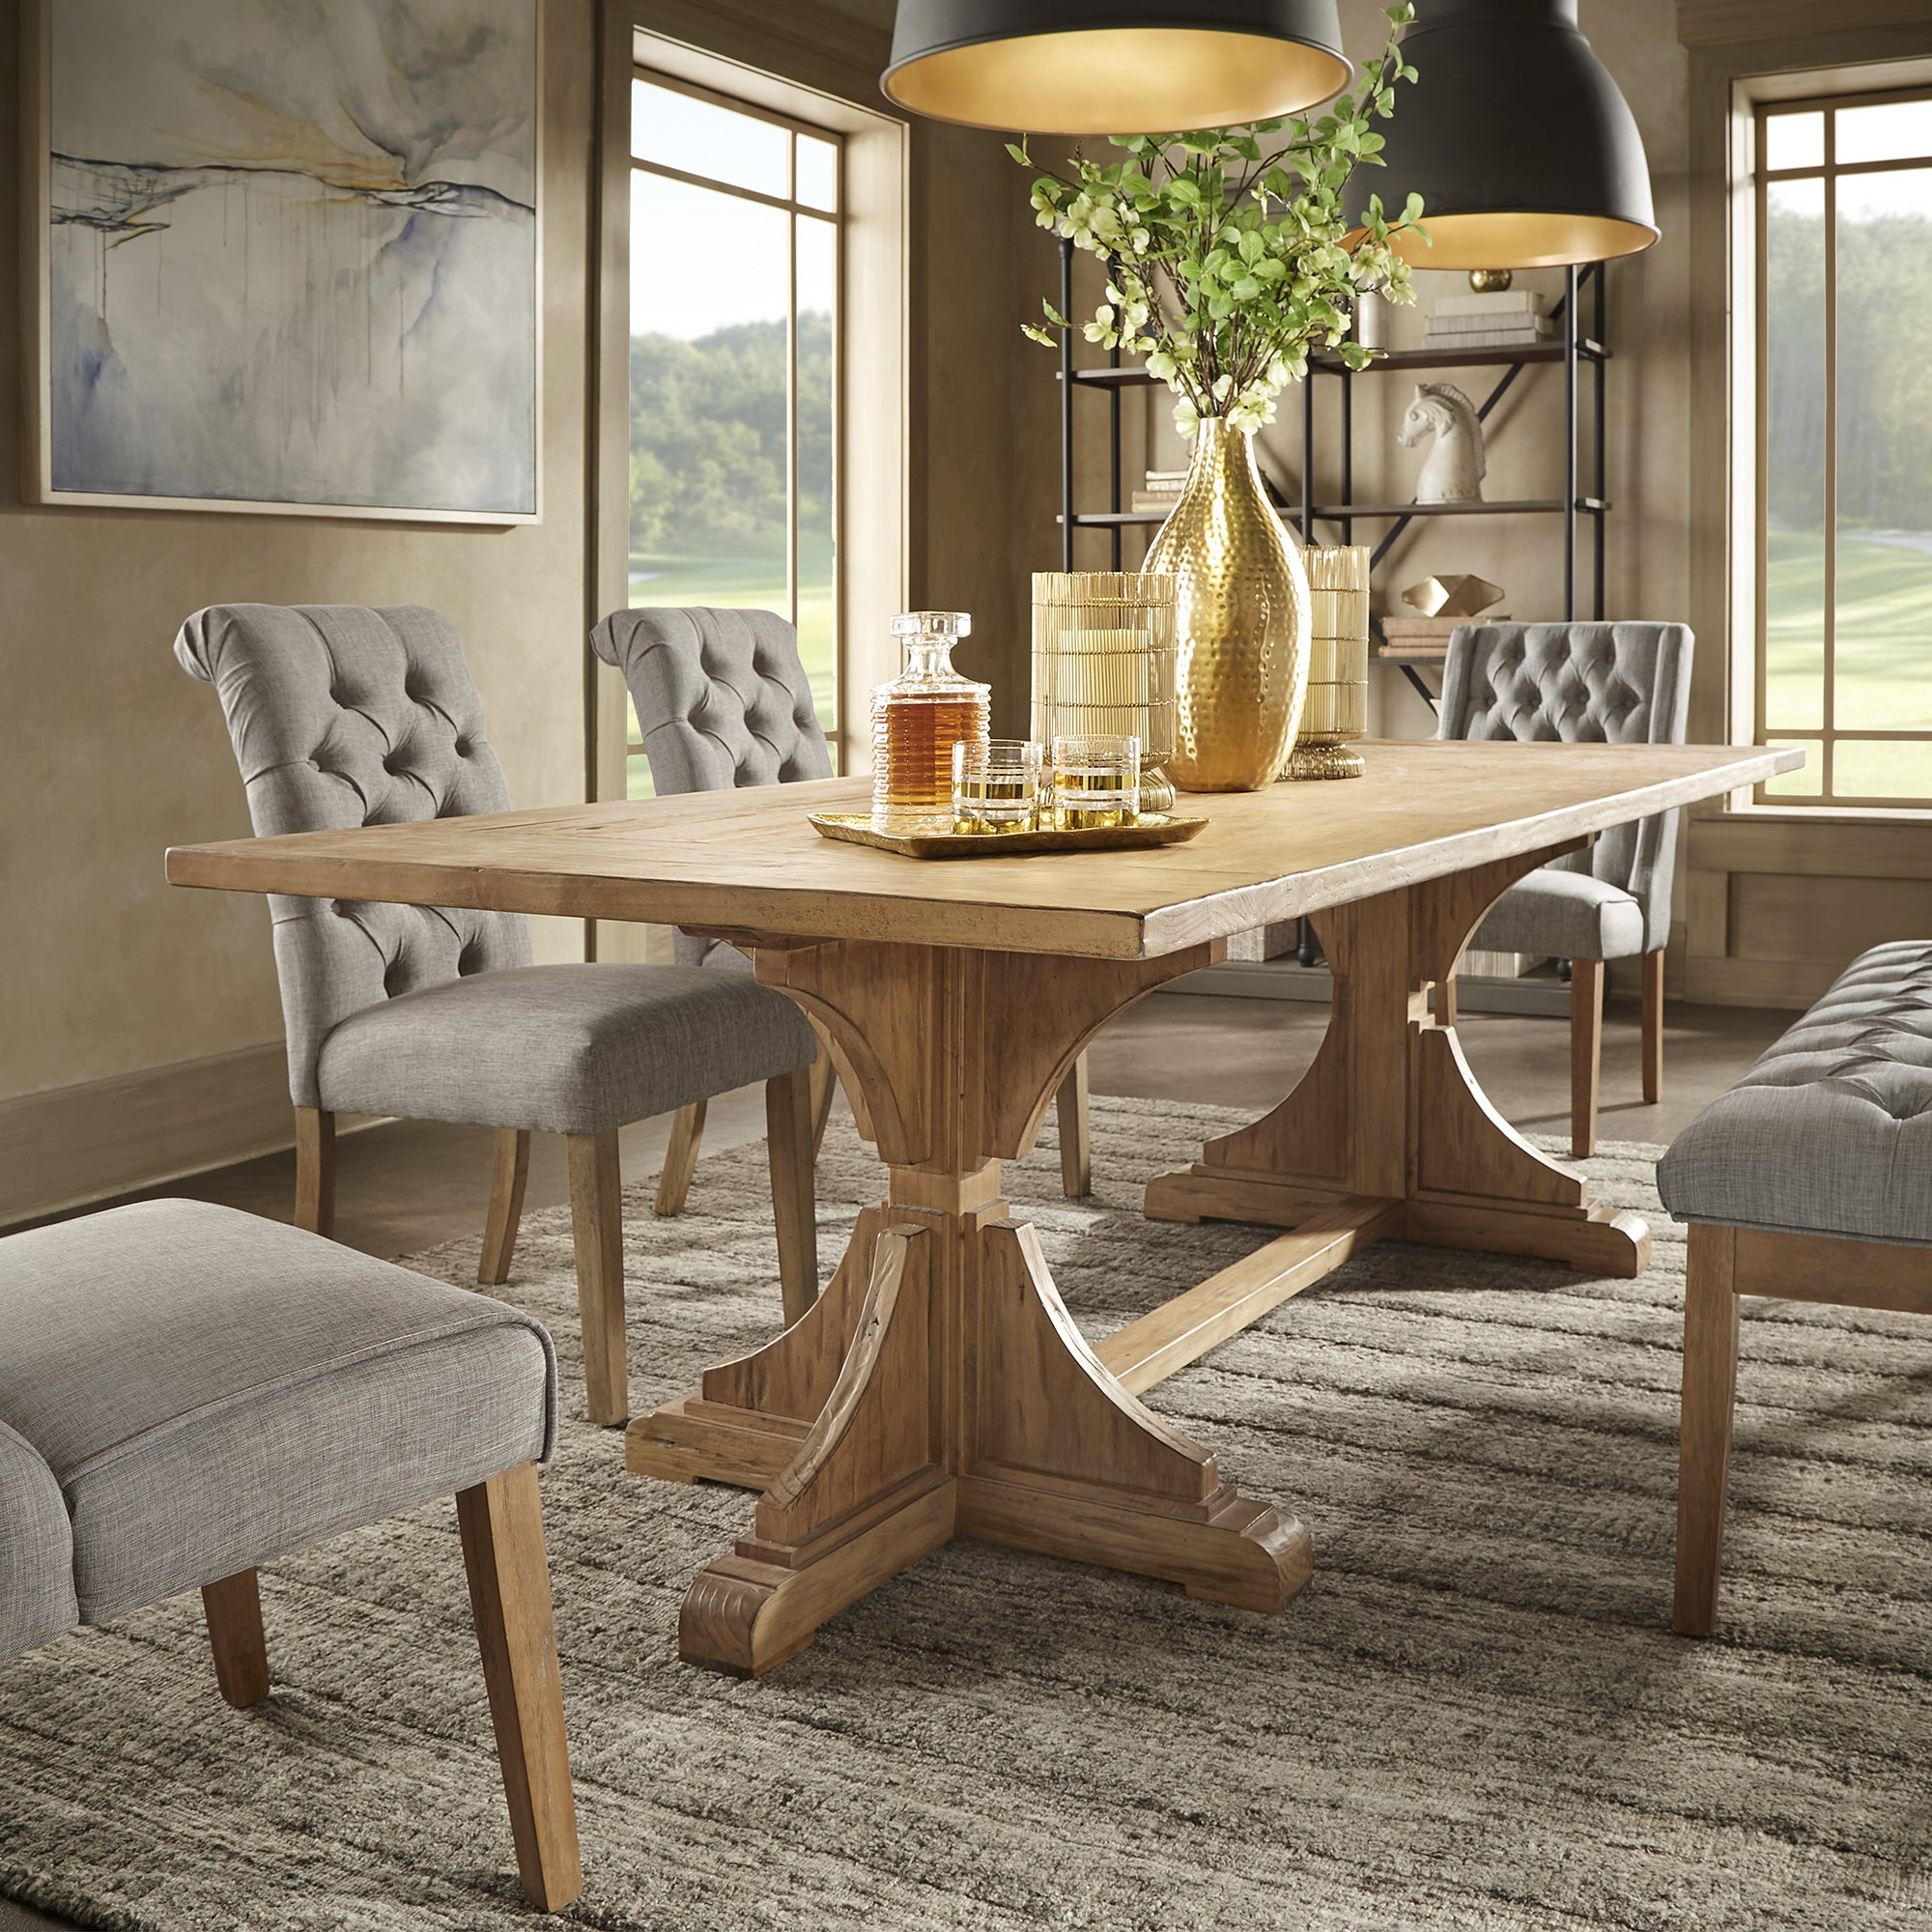 Yarla reclaimed natural finish 96 inch trestle dining table by inspire q artisan